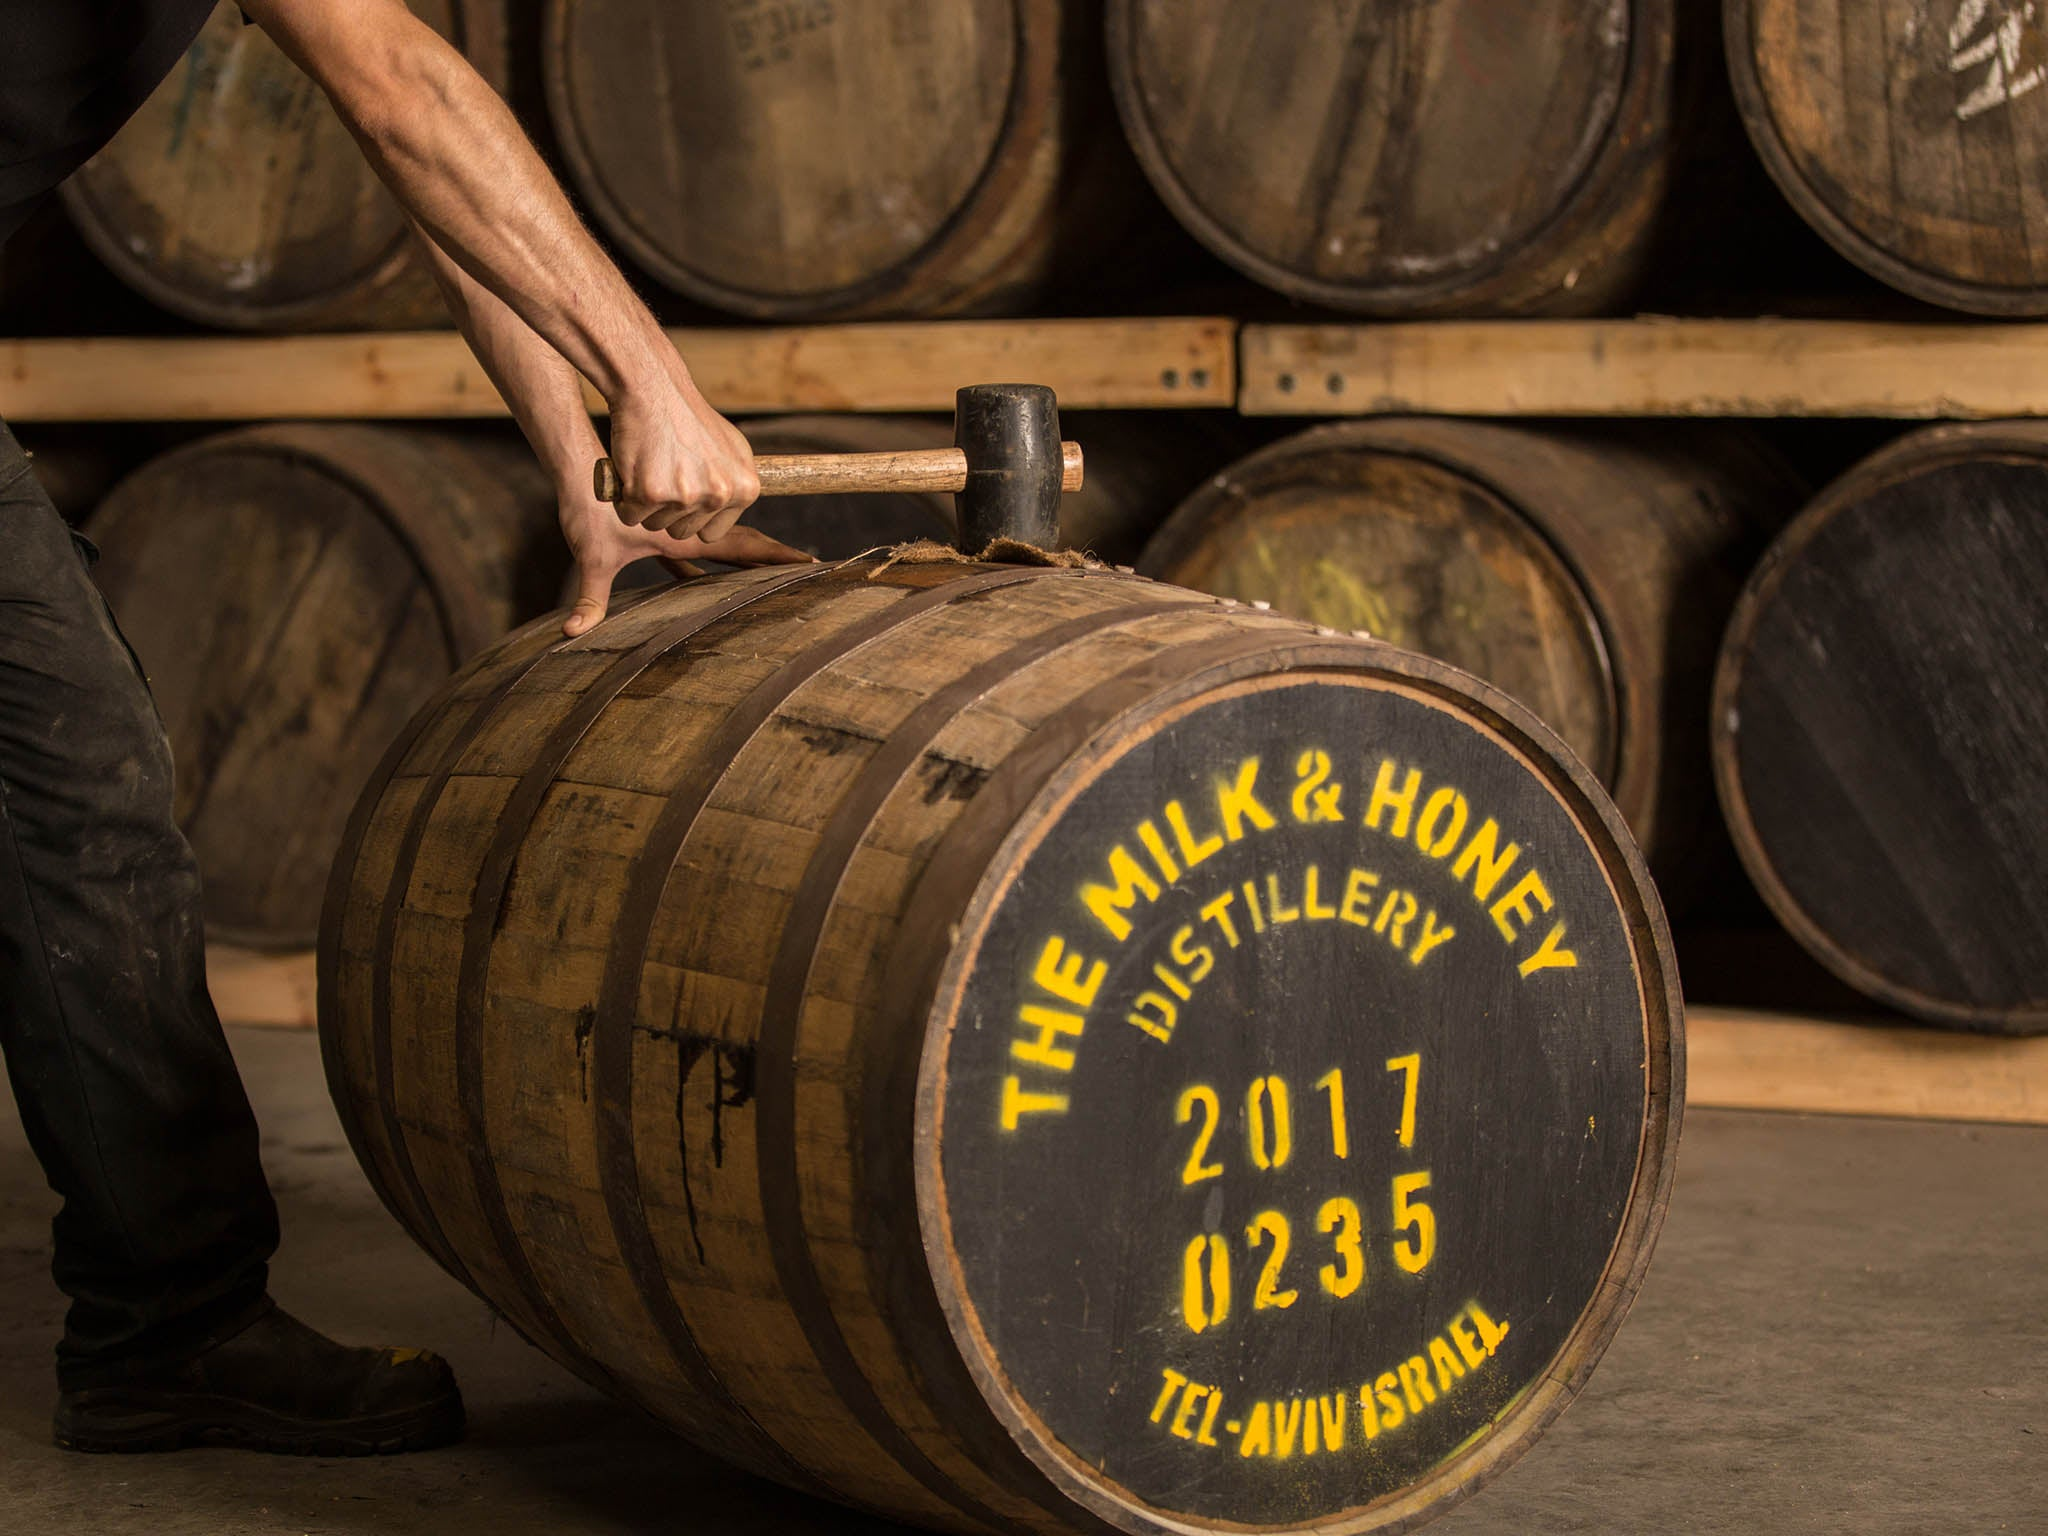 Milk & Honey, Barley & Humidity: How a whisky revolution is happening in Israel 1